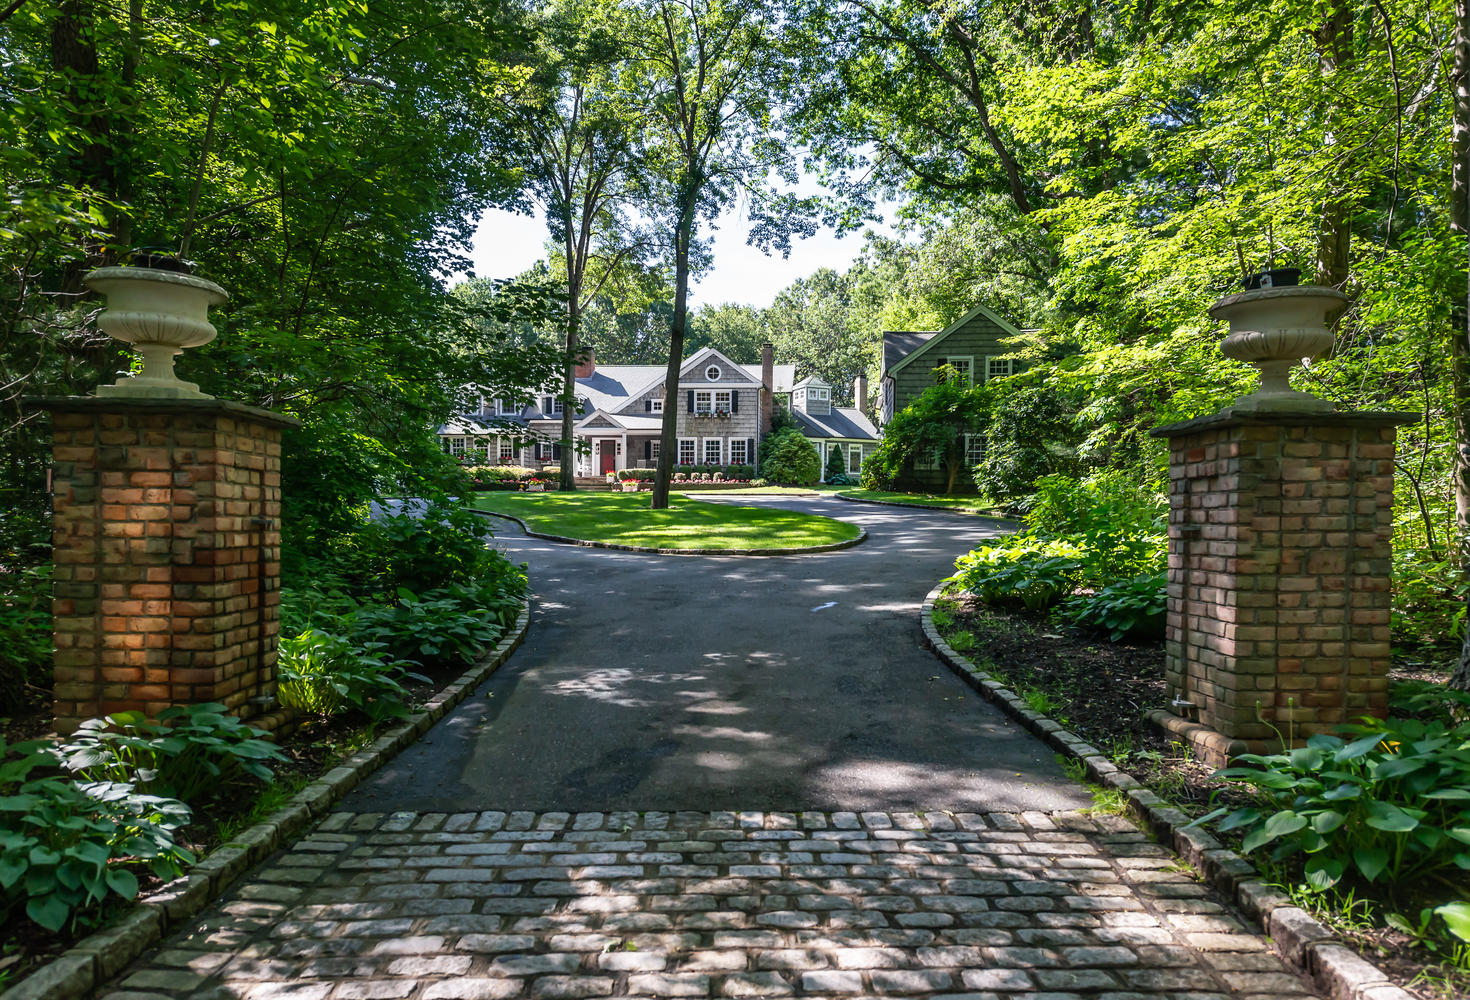 Single Family Homes for Sale at Laurel Hollow 1240 Moores Hill Road Laurel Hollow, New York 11791 United States